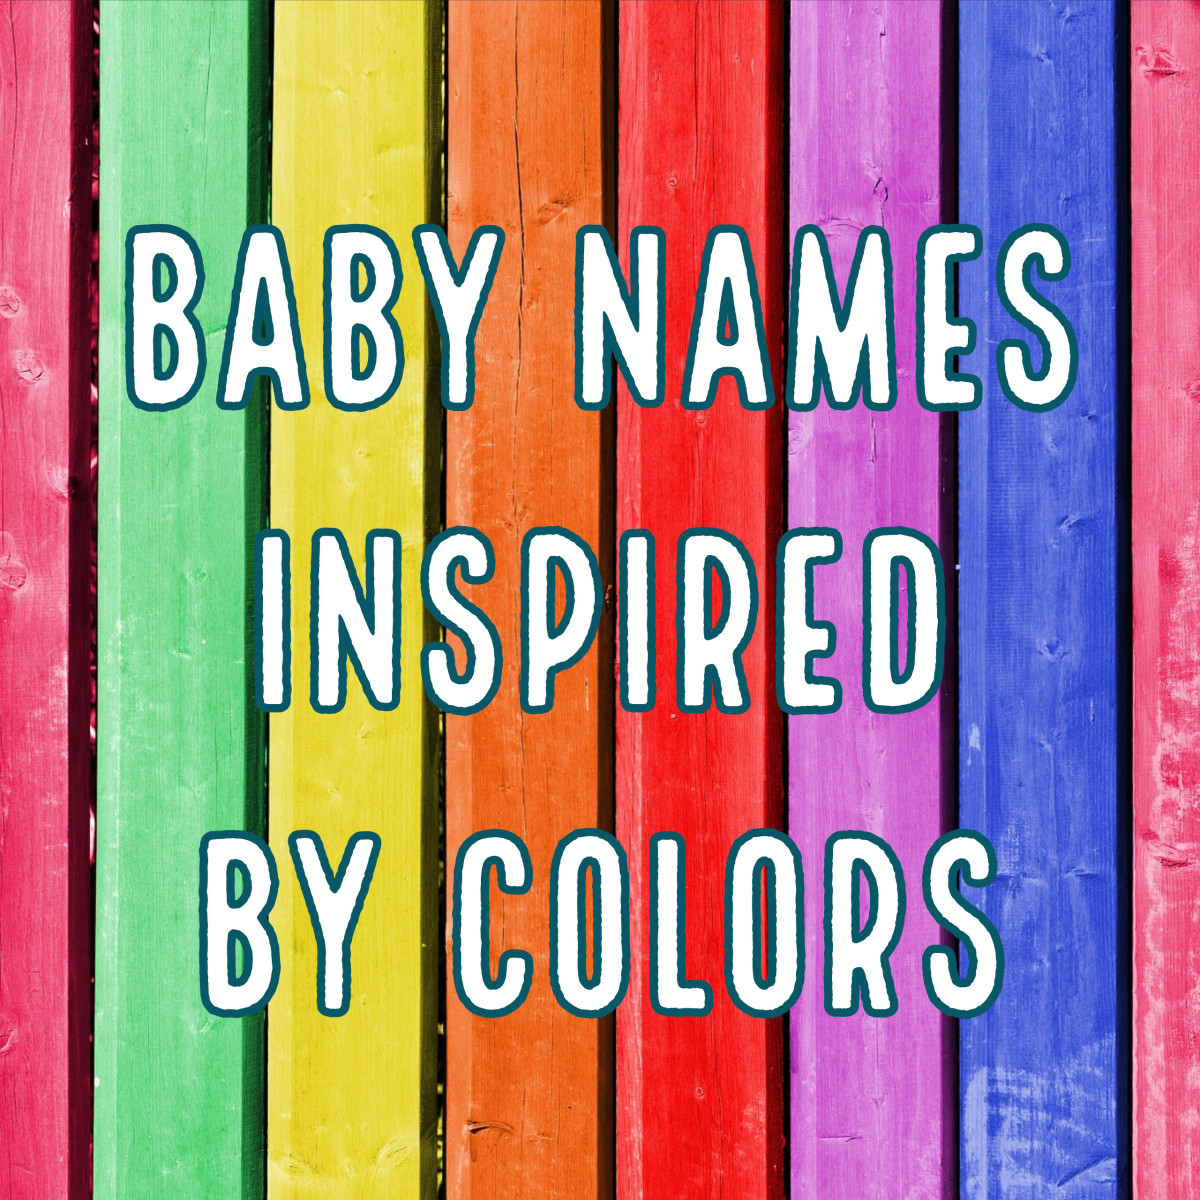 The Full Spectrum of Unique Color Names for Babies